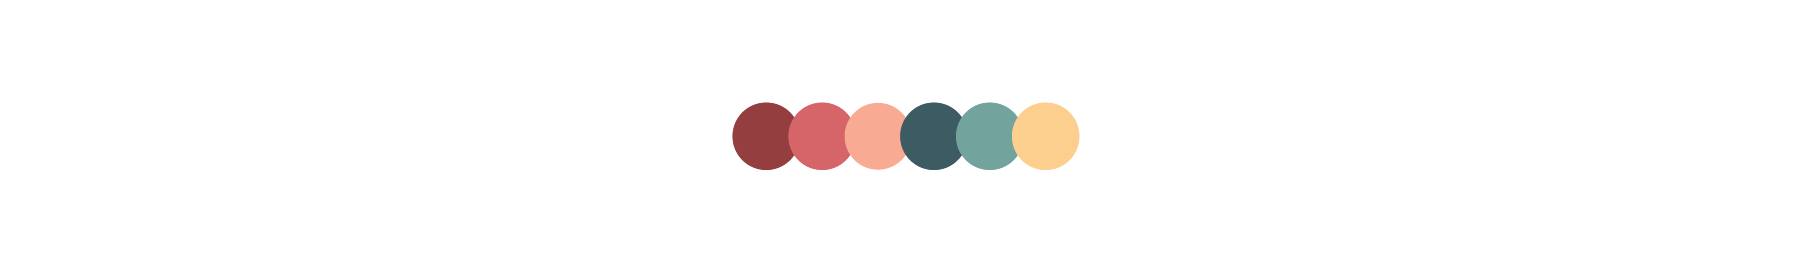 Swatch Divider-01.png